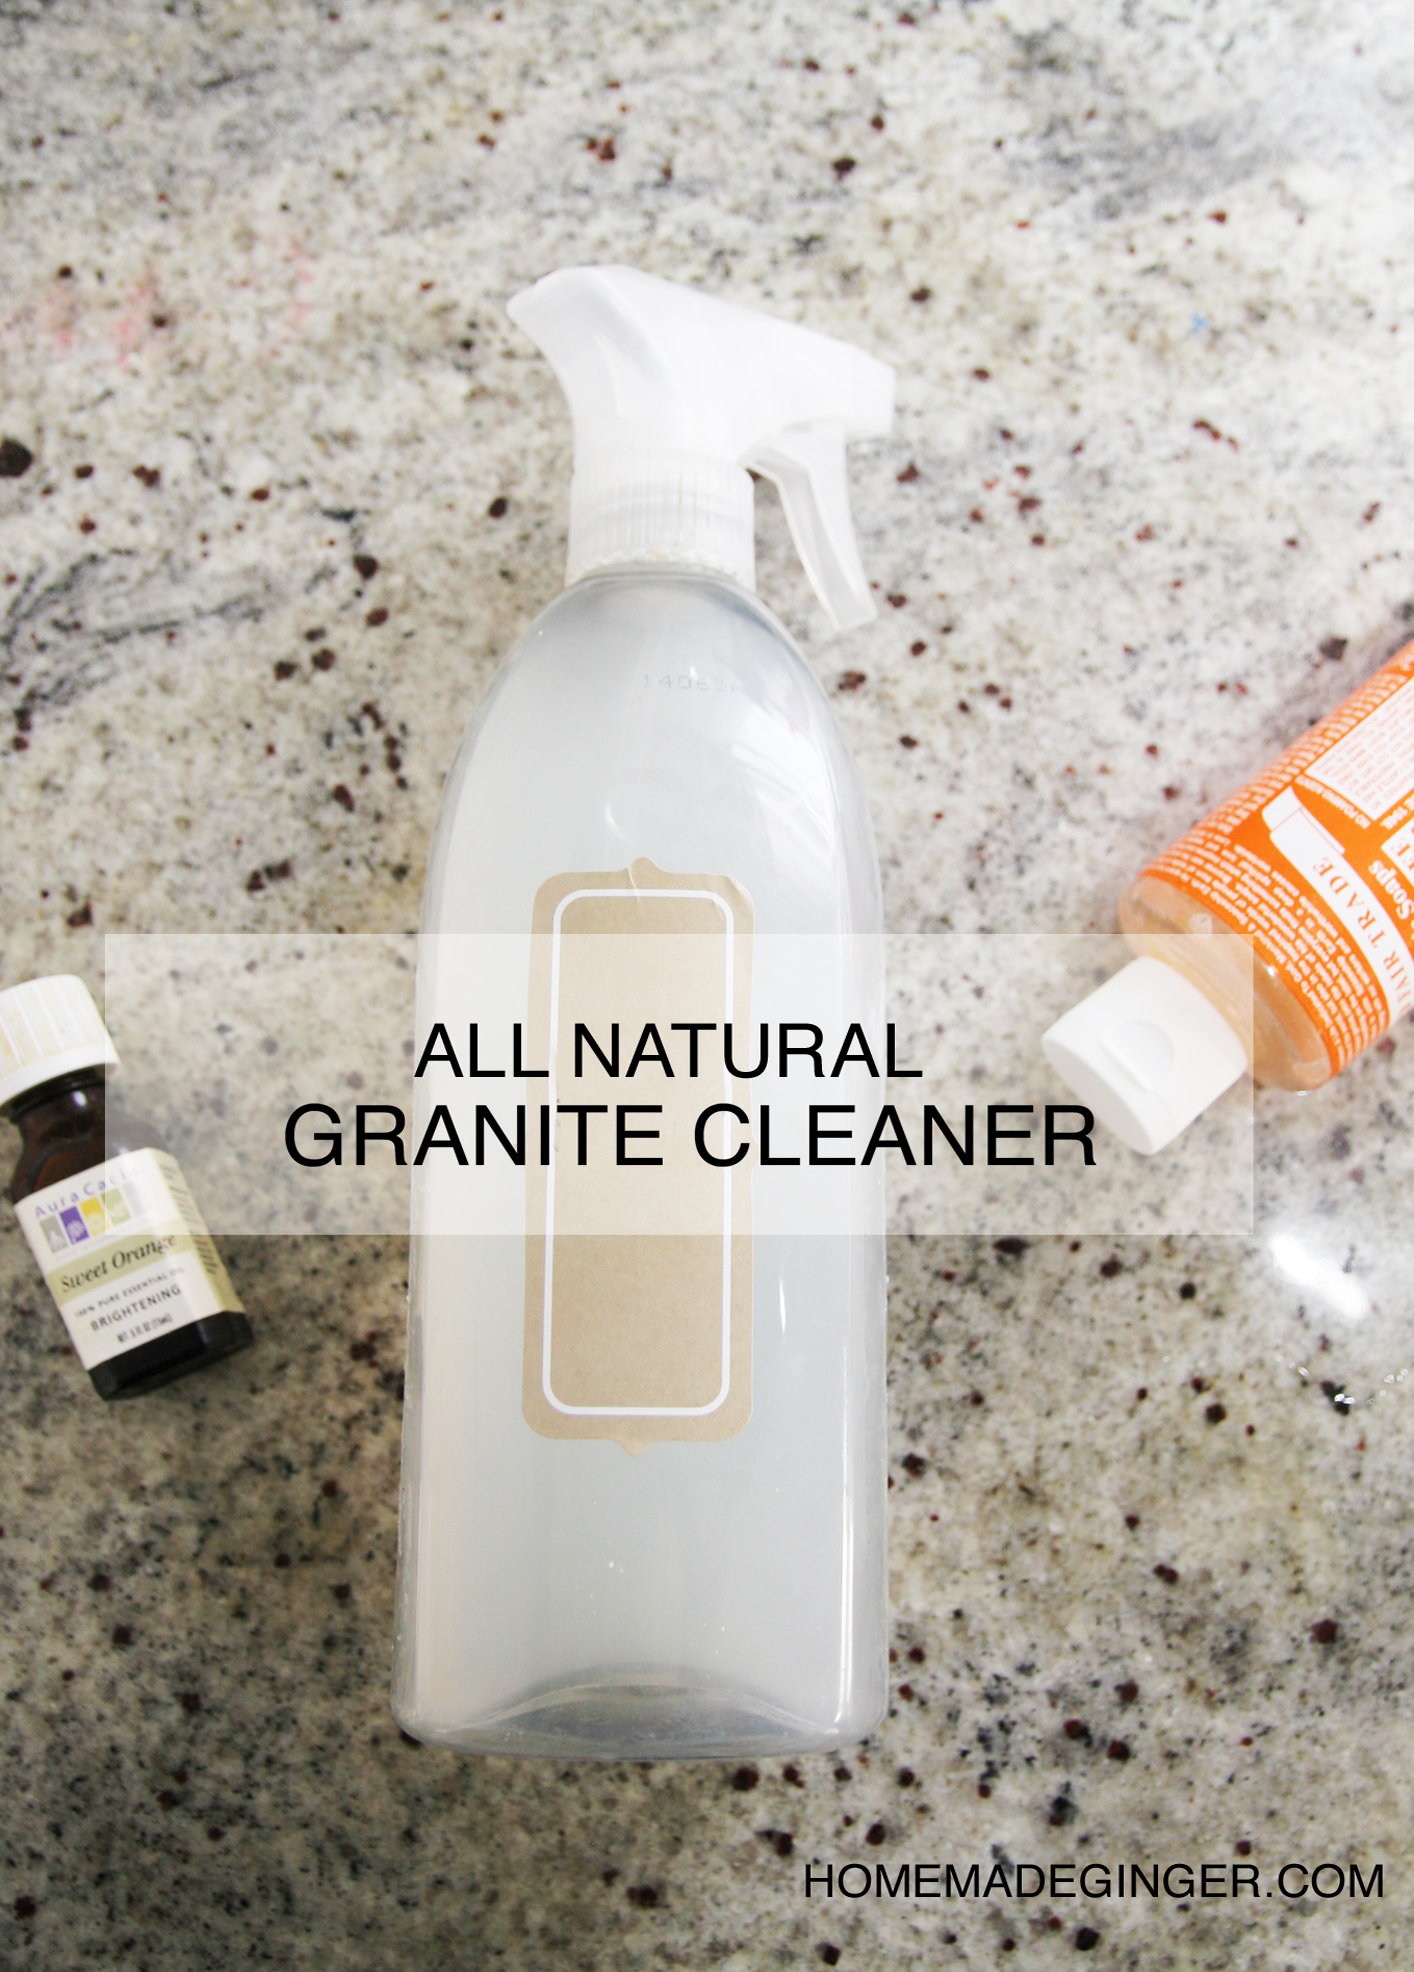 This DIY granite cleaner contains no dish detergent, so it's all natural. It really makes the countertops sparkle! Works on tile and other surfaces, too.